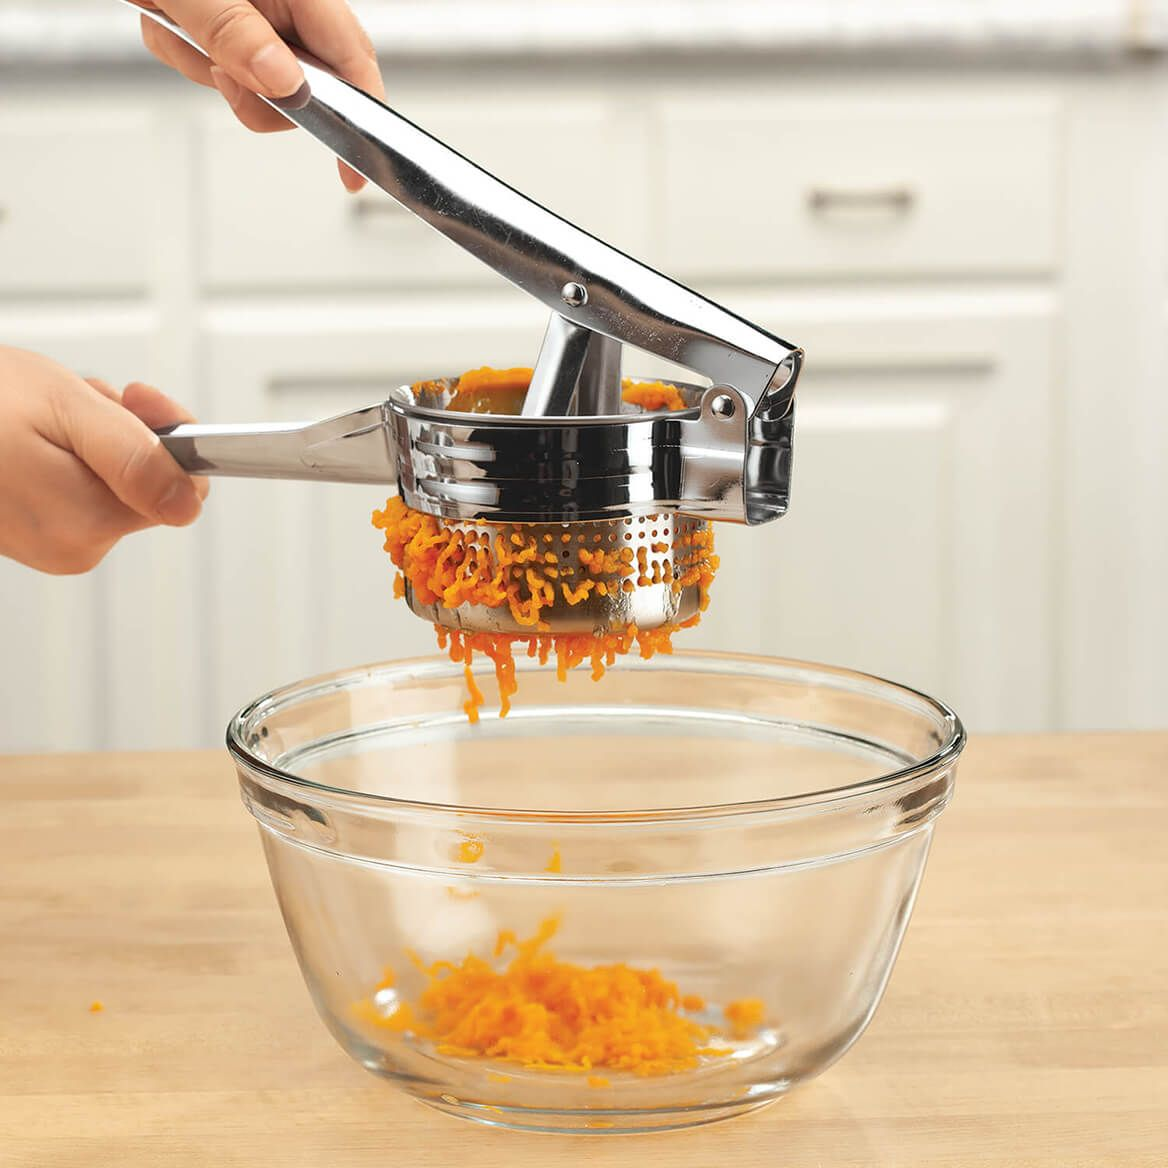 Stainless Steel Food Masher and Ricer-372359